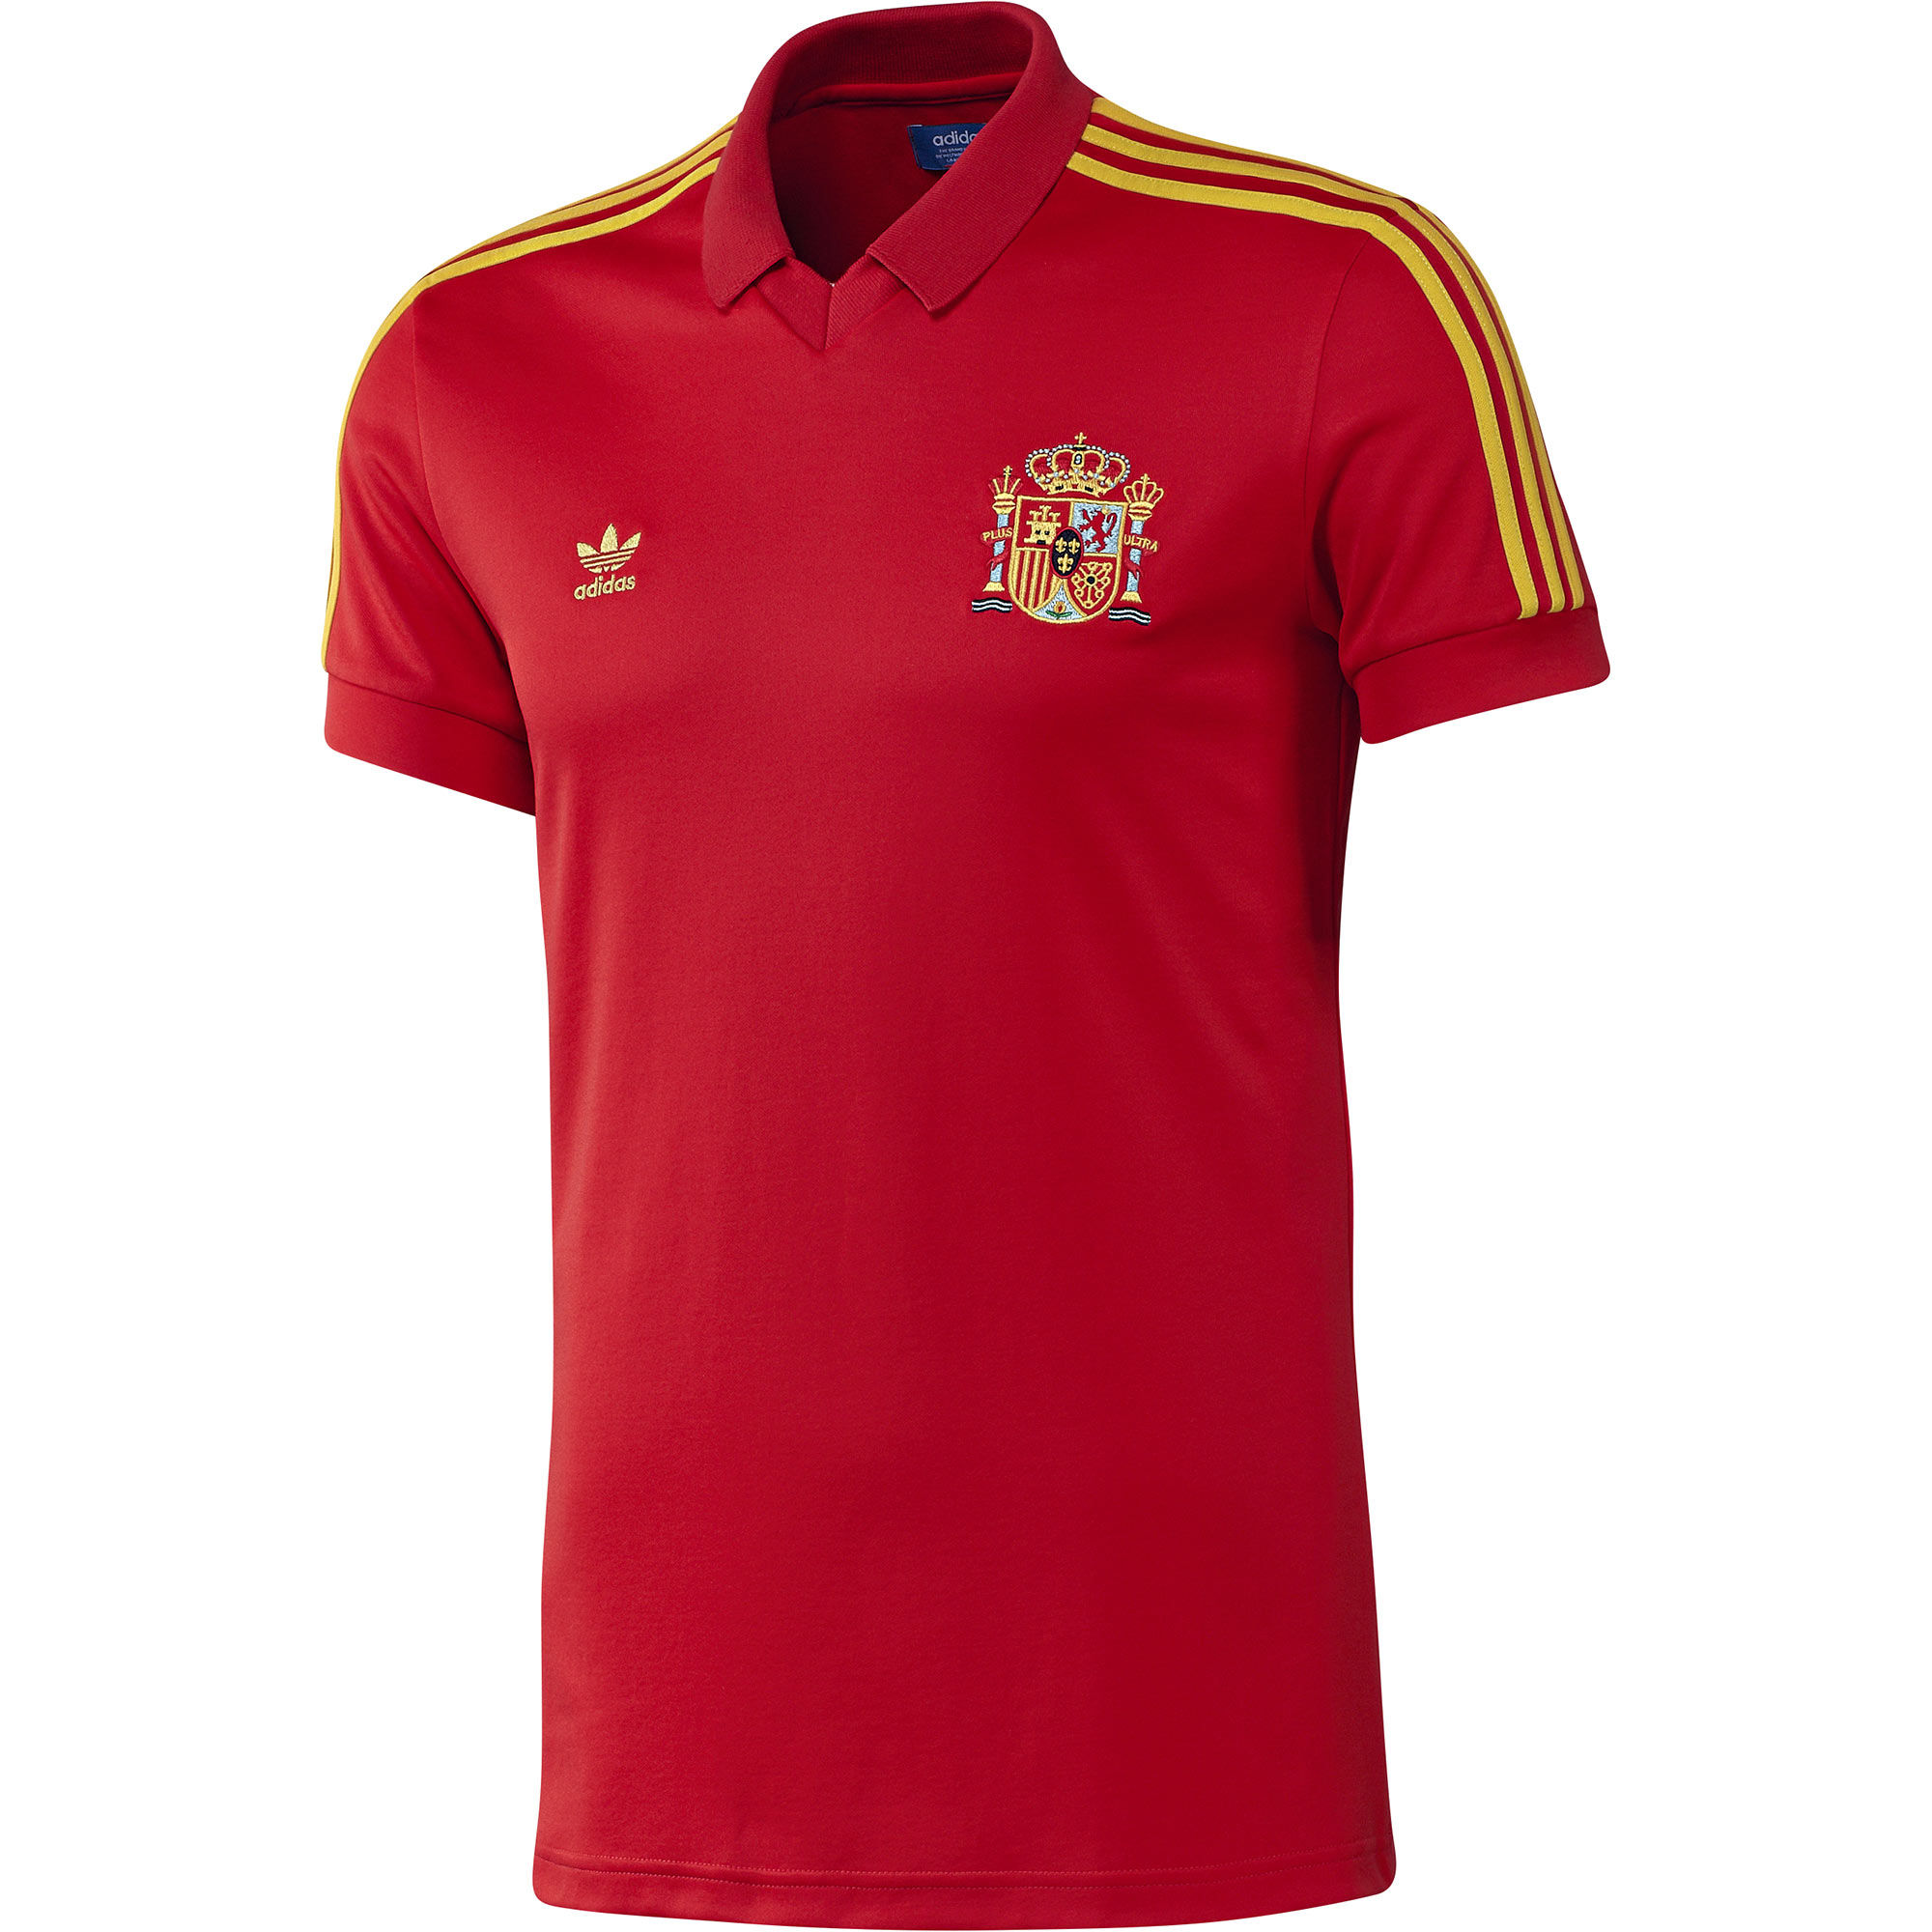 Adidas spain retro jersey for Spain t shirt football